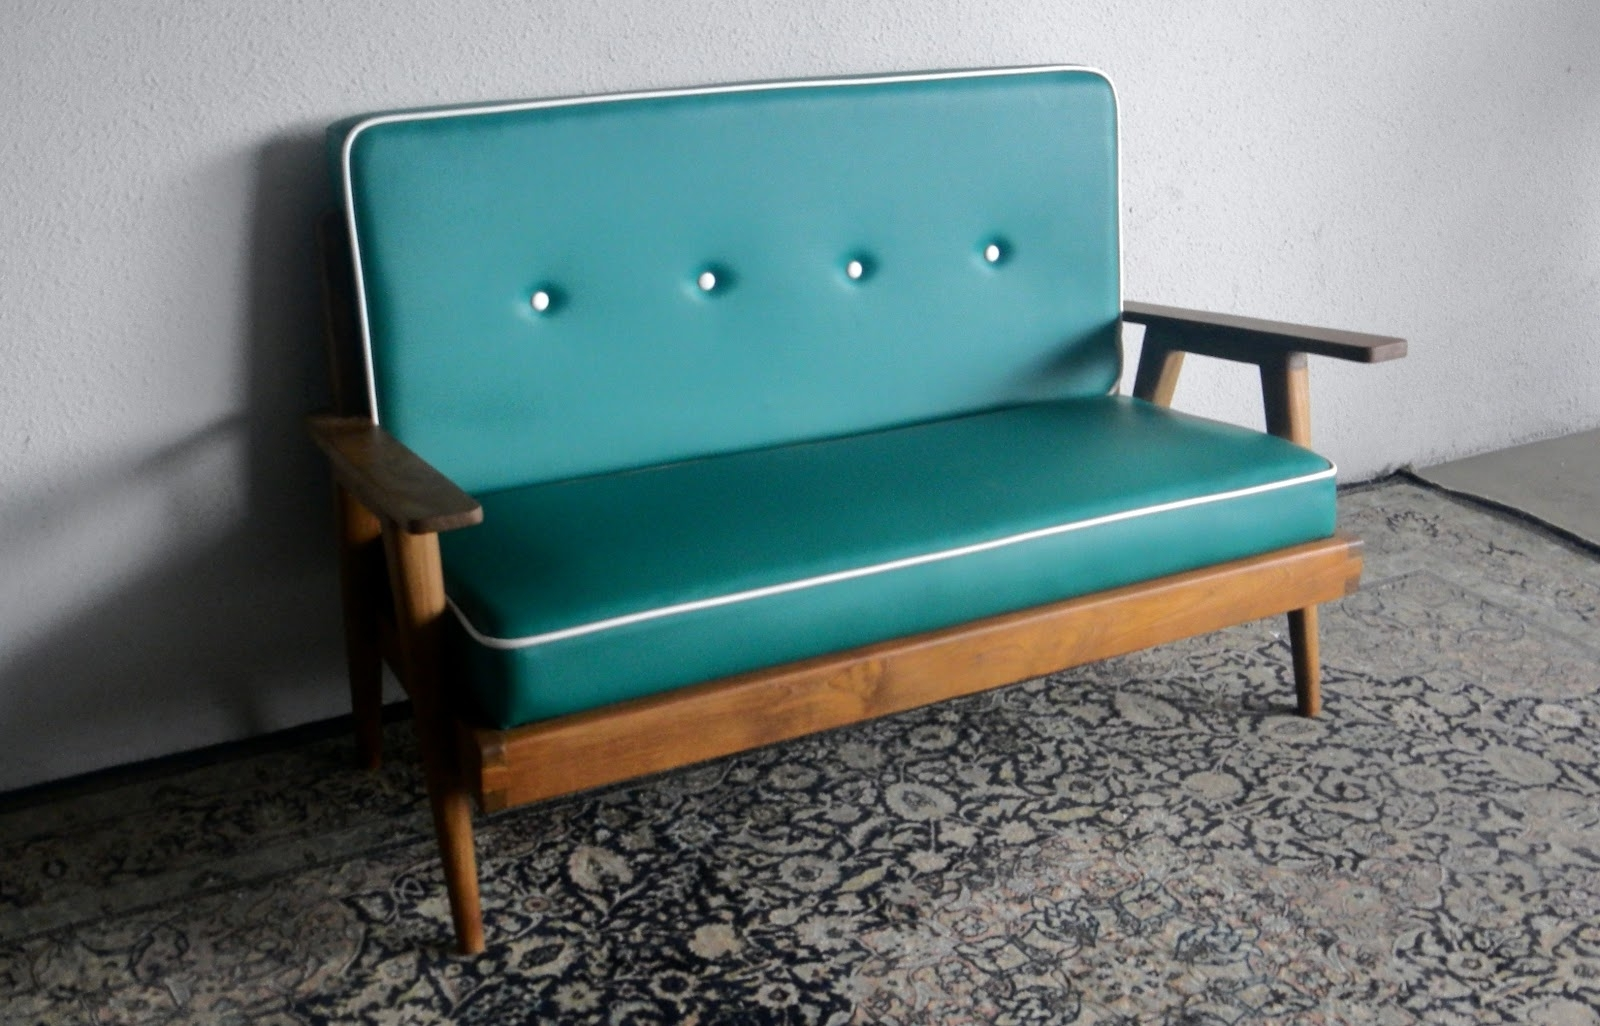 Famous Retro Sofas And Chairs Throughout Retro Sofas And Chairs (View 17 of 20)